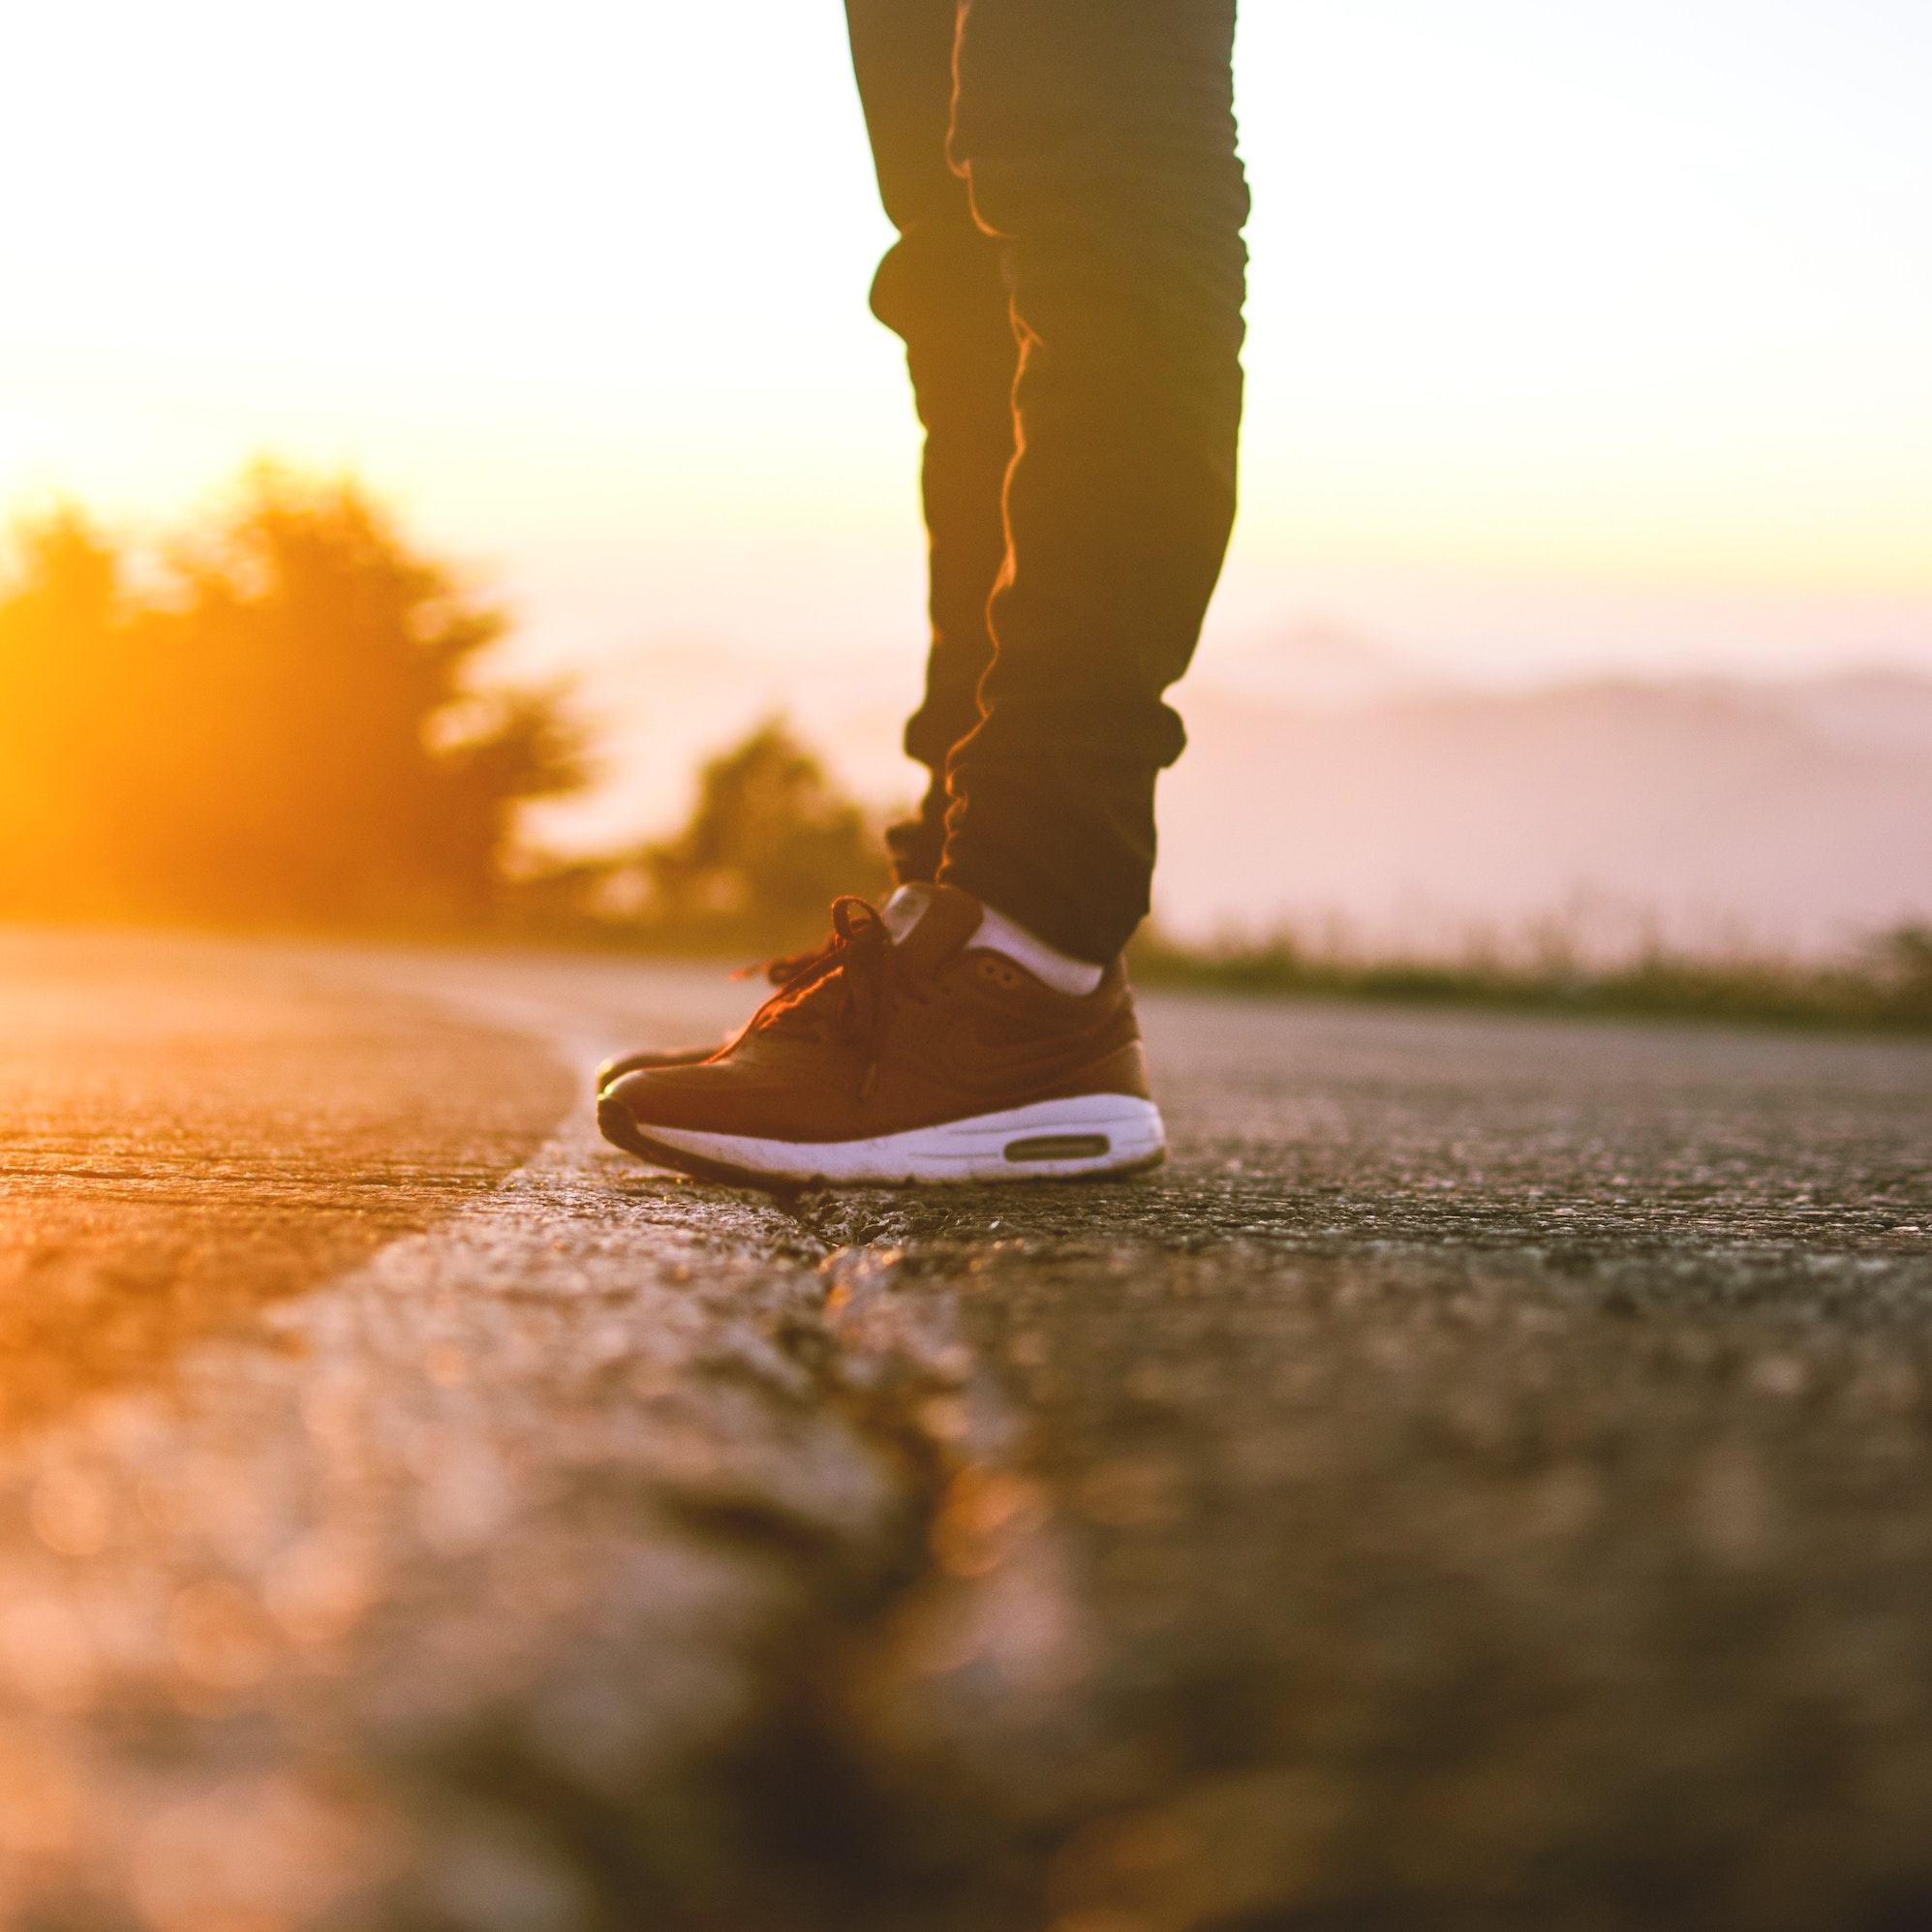 165 The worst running shoes for stress